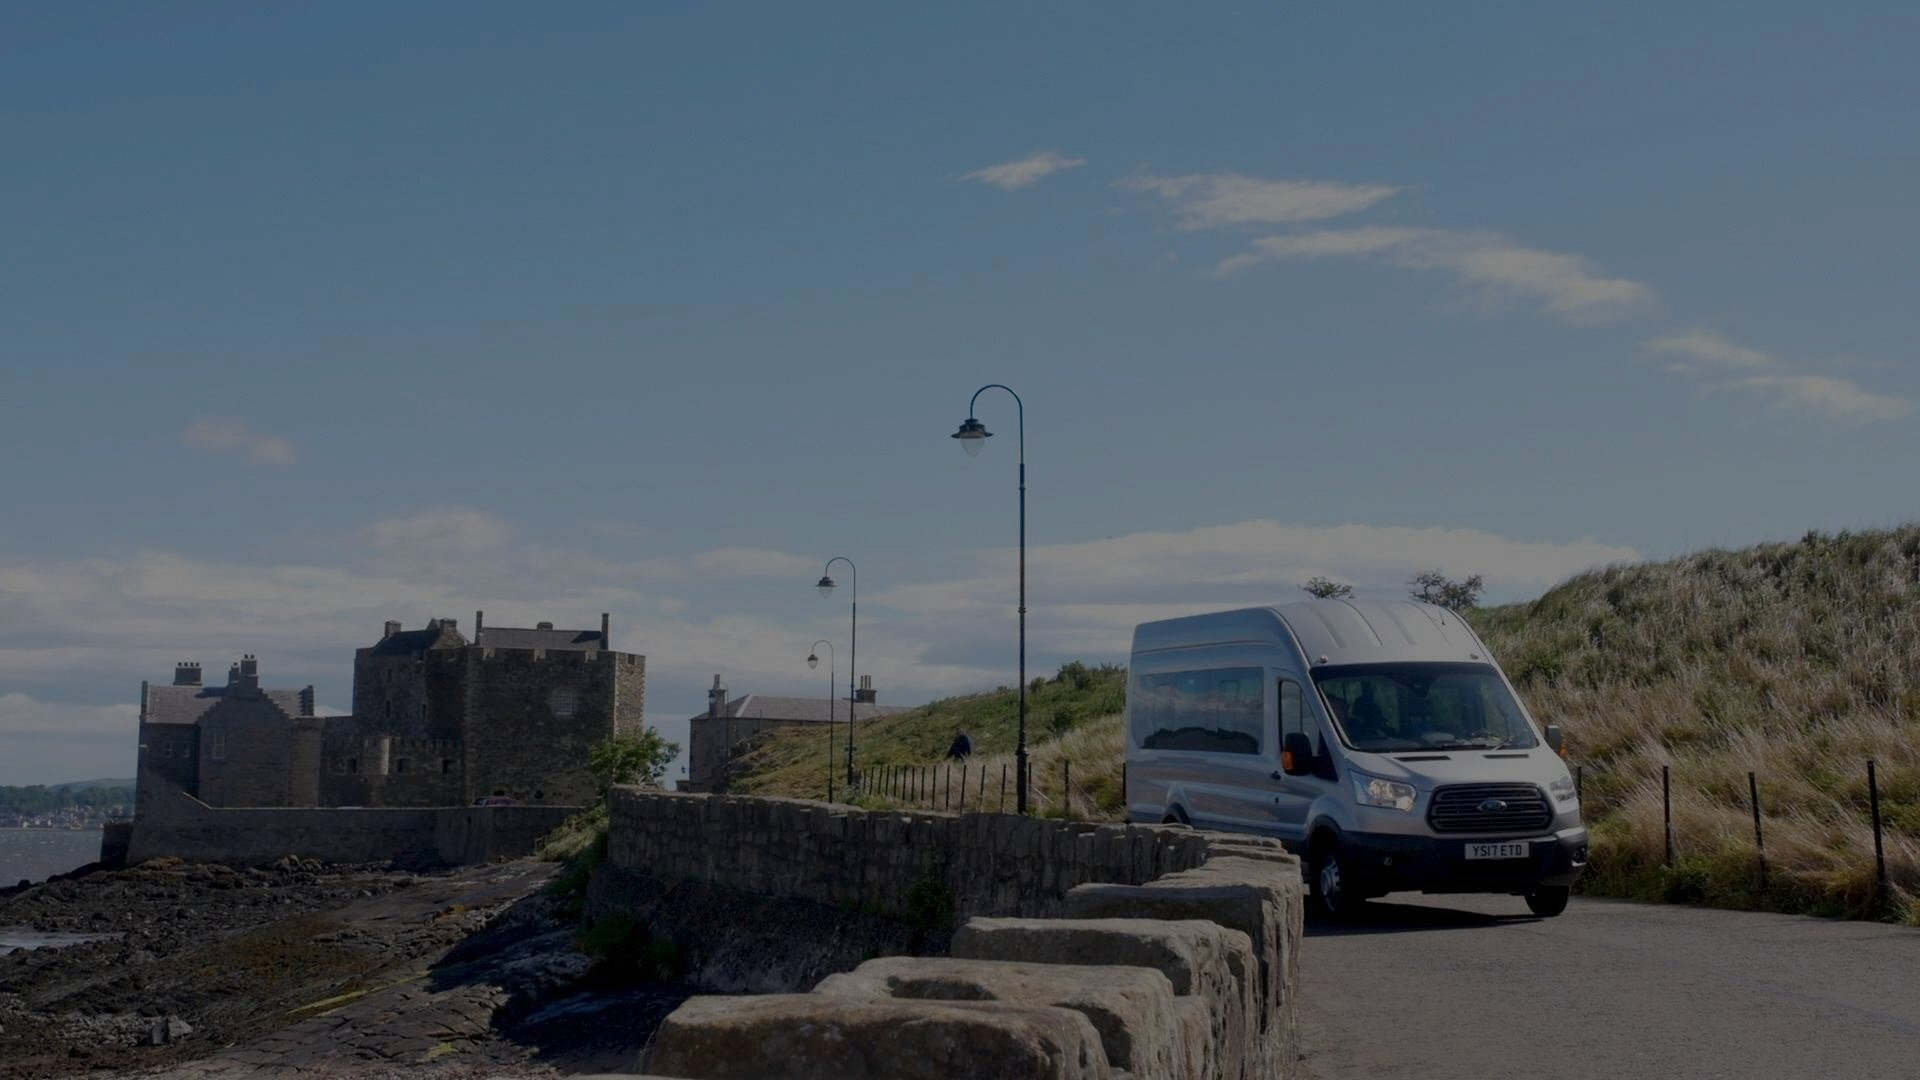 Boness Community Bus at Blackness Castle